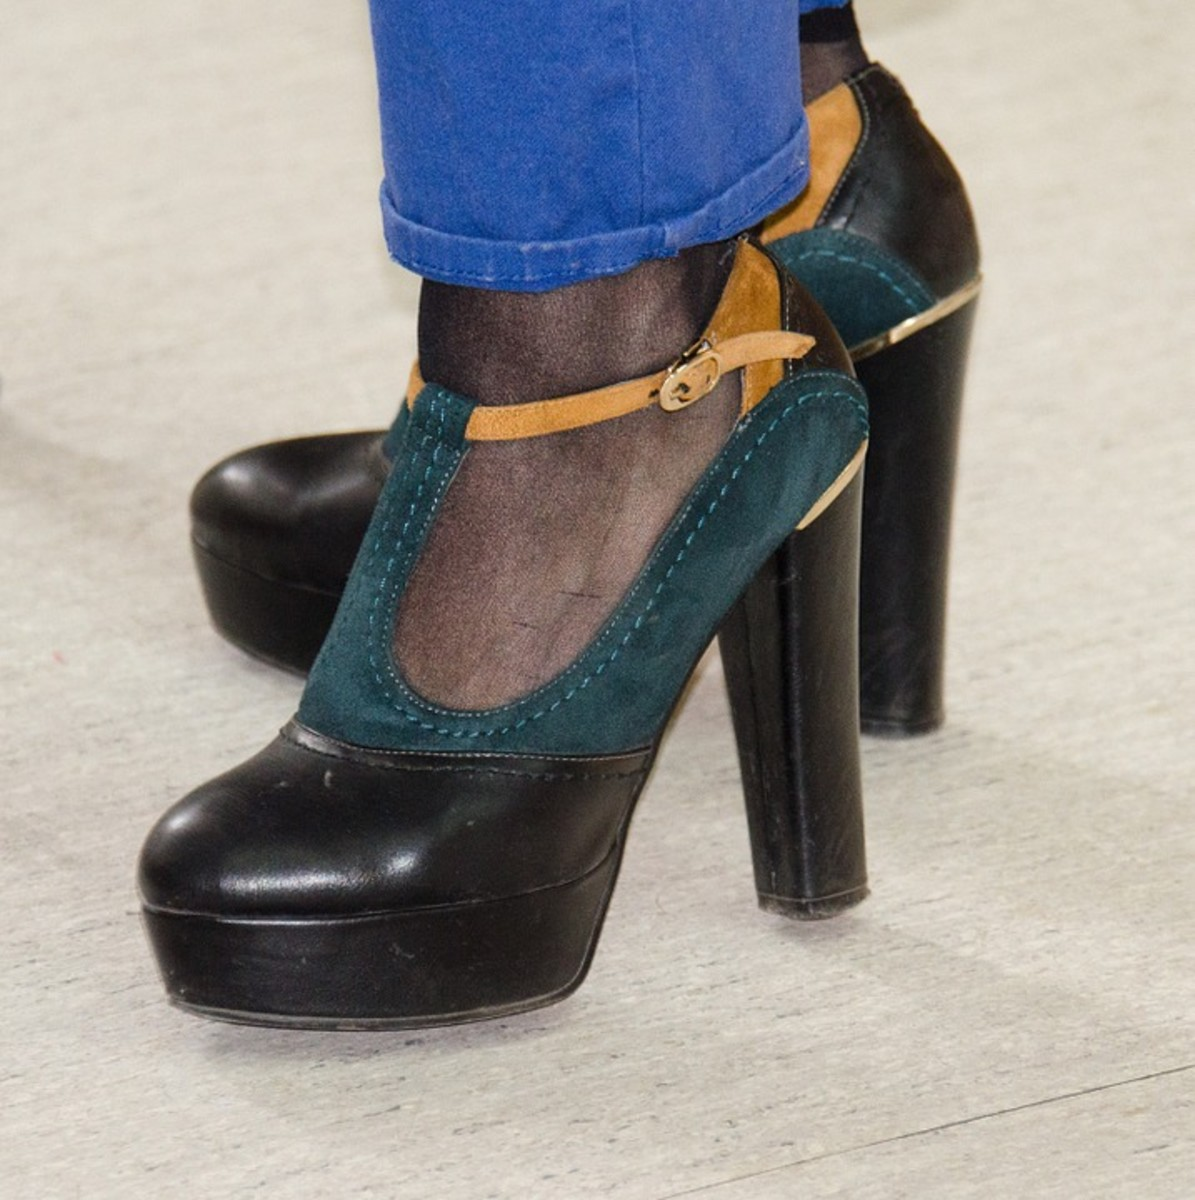 Shoes like these were ALL the rage in the 1970s!